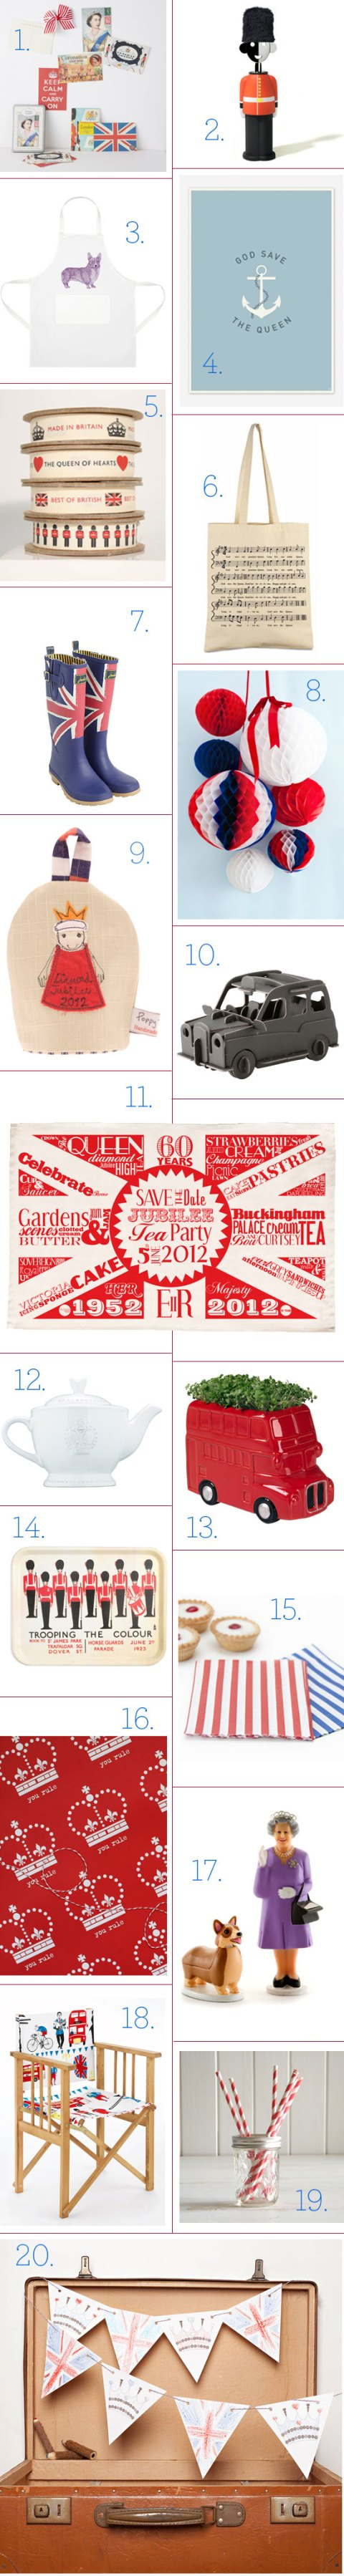 Jubilee, Queen's Diamond Jubilee, homeware, patriotic, street party, bunting, The Queen, homeshoppingspy, alice humphrys, B&Q, Sainsburys, Pedlars